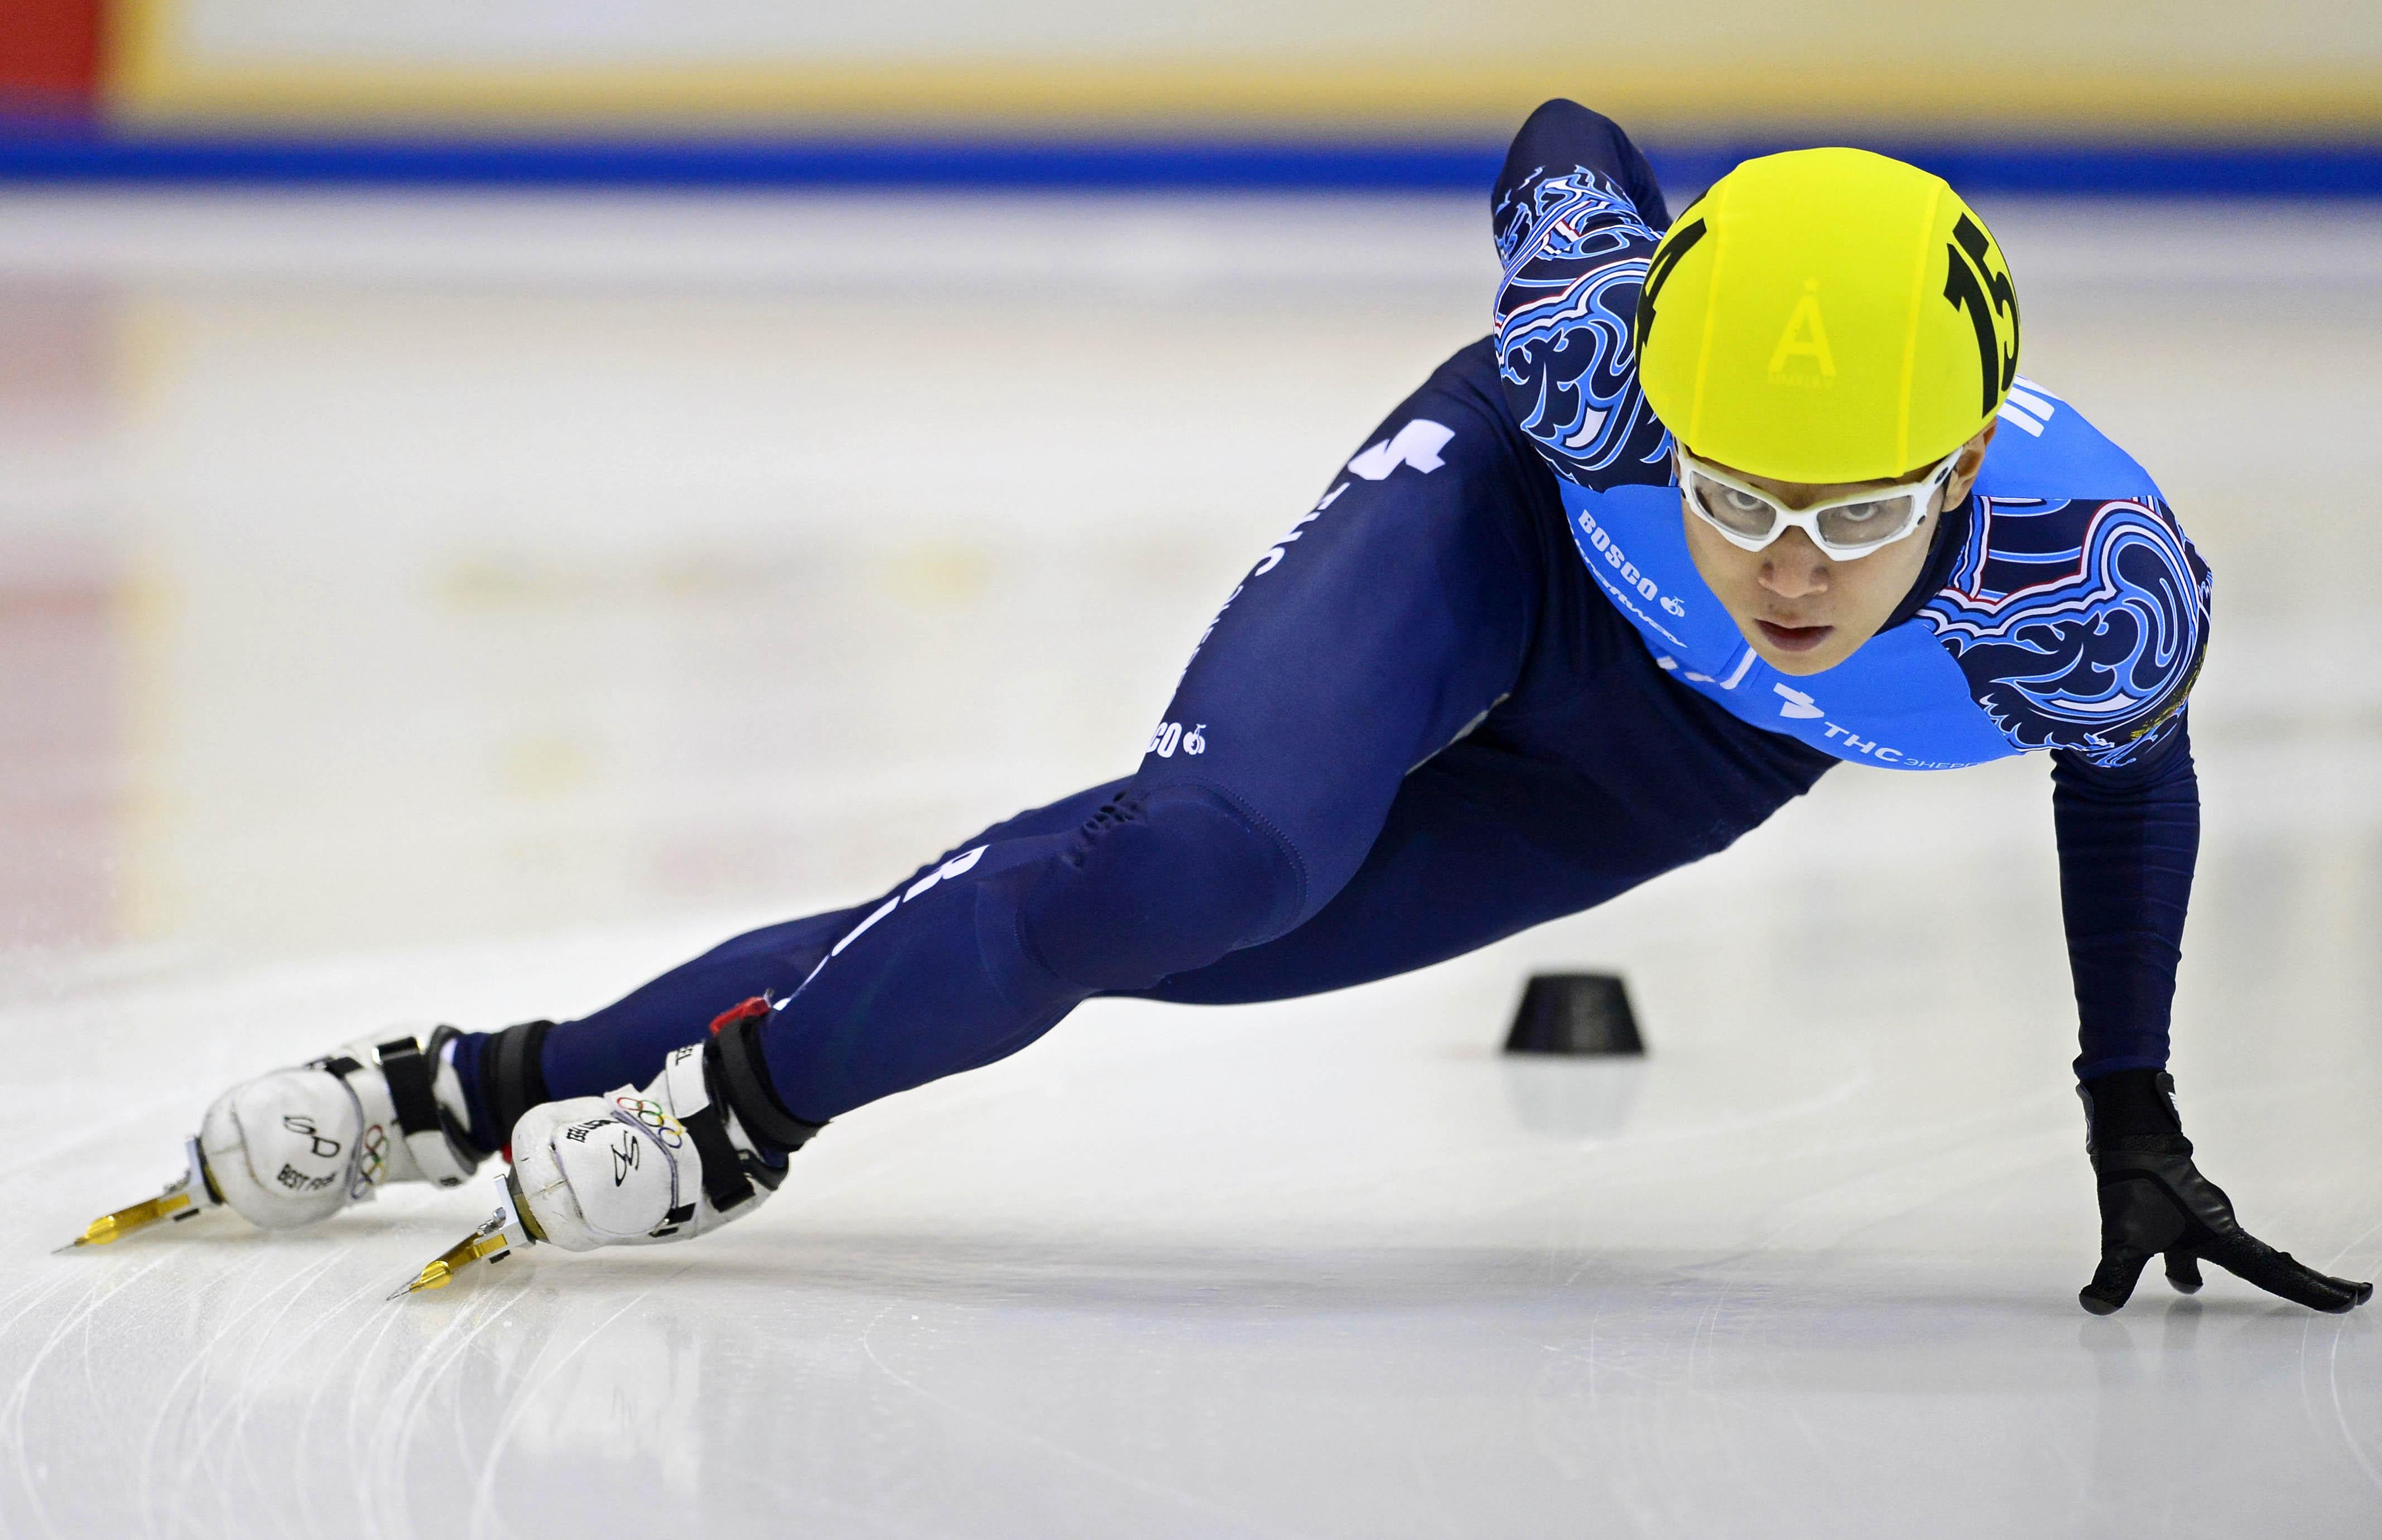 Victor An of Russia competes in the men's 1000m heat race of the ISU European Short Track speed skating Championships in Dresden, eastern Germany, on January 19, 2014.